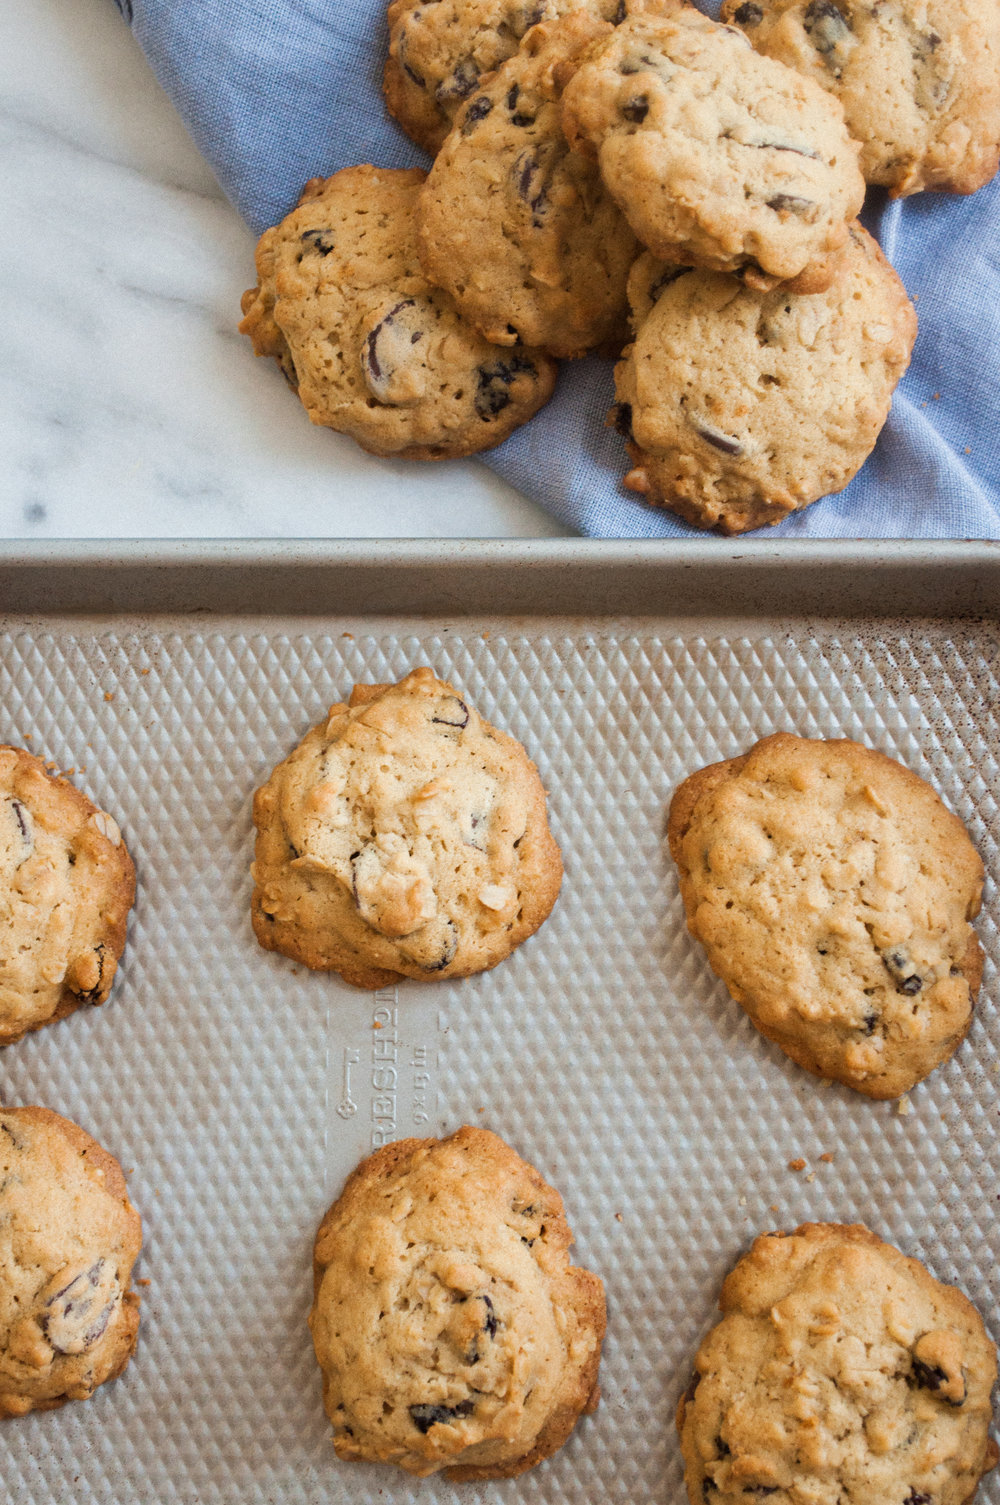 Summerfield Delight by Meg Summerfield | Review of Small Victories Cookbook by Julia Turshen | Chocolate Chip Oatmeal Cookies